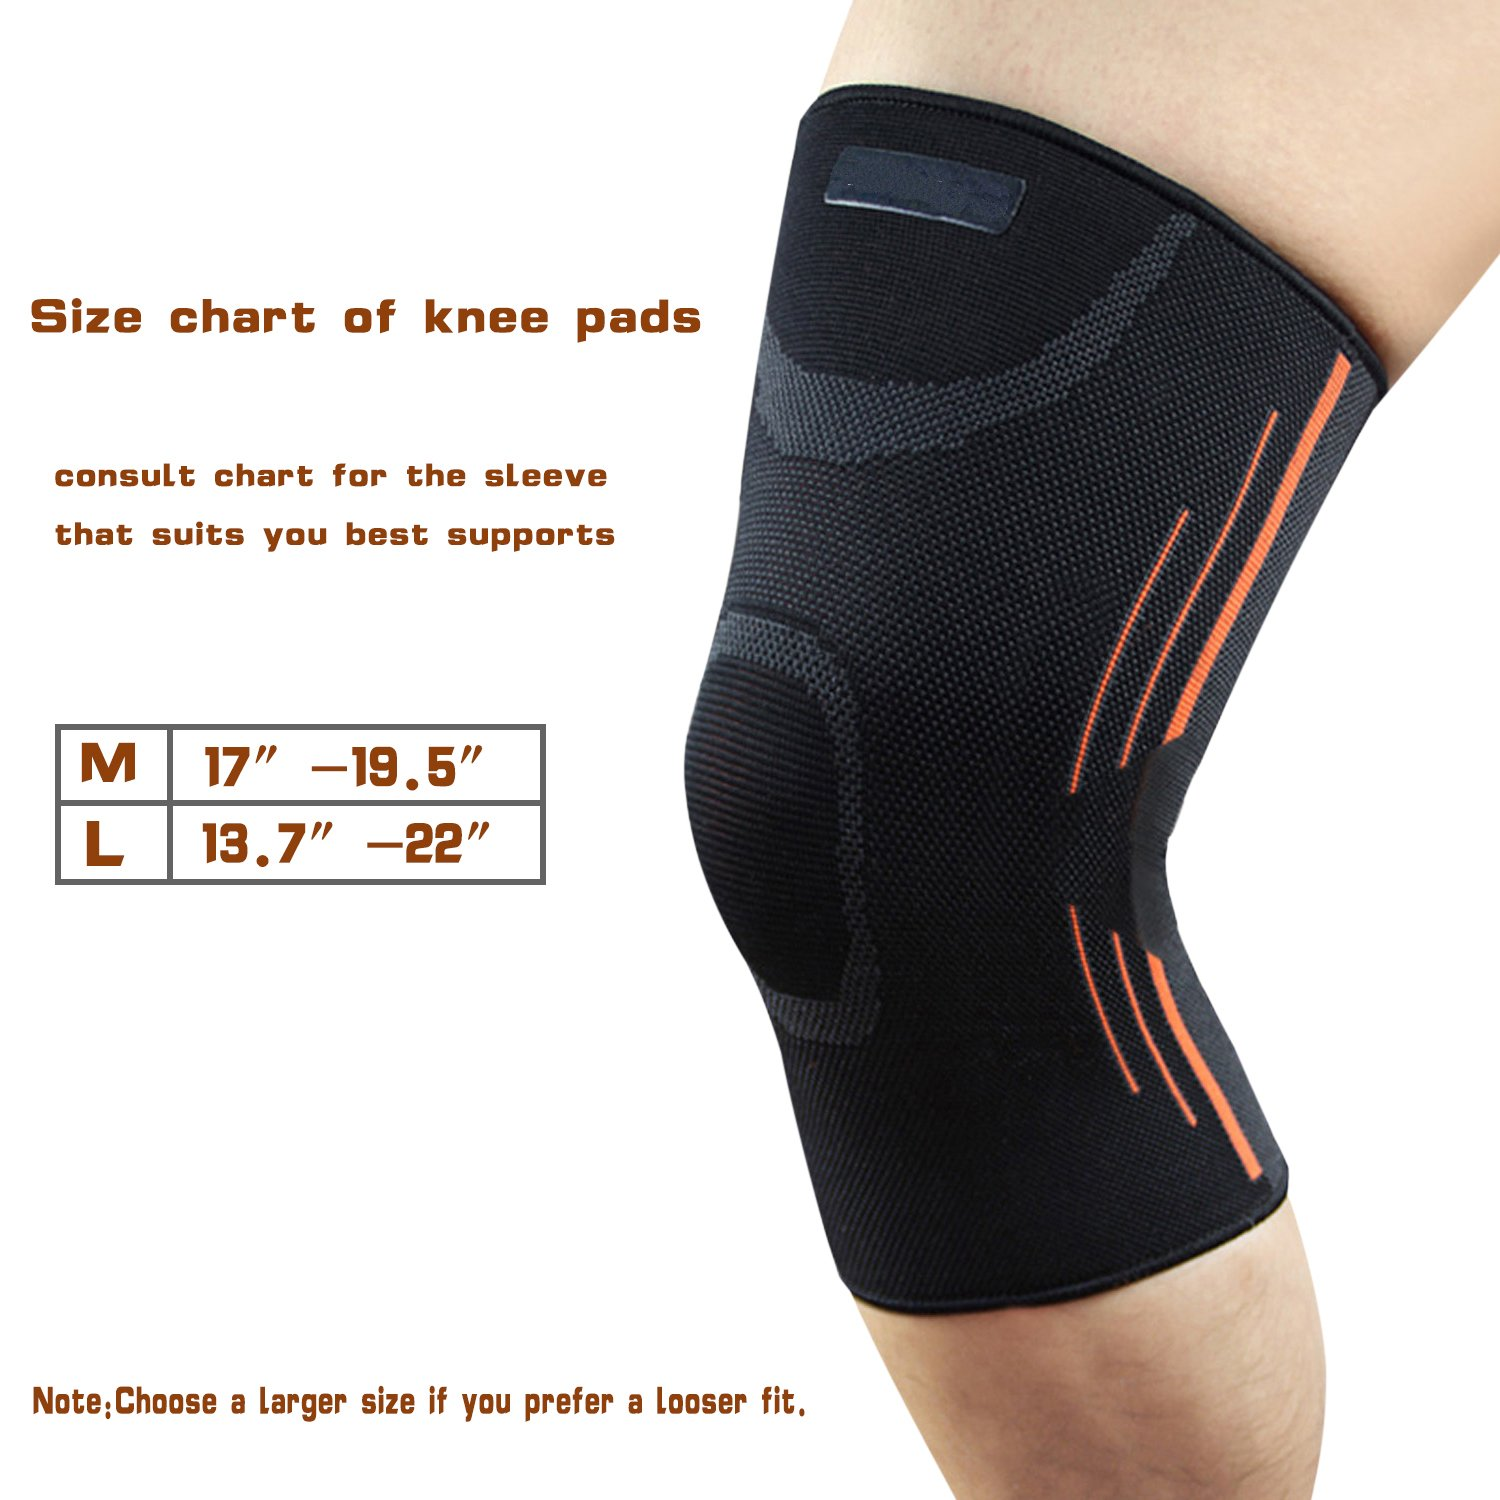 9e874a6611 Knee Brace Sports Compression Support Sleeve, Knee Braces Compression for  Running, Jogging, Biking, Joint Pain Relief, ACL, Arthritis & Injury ...